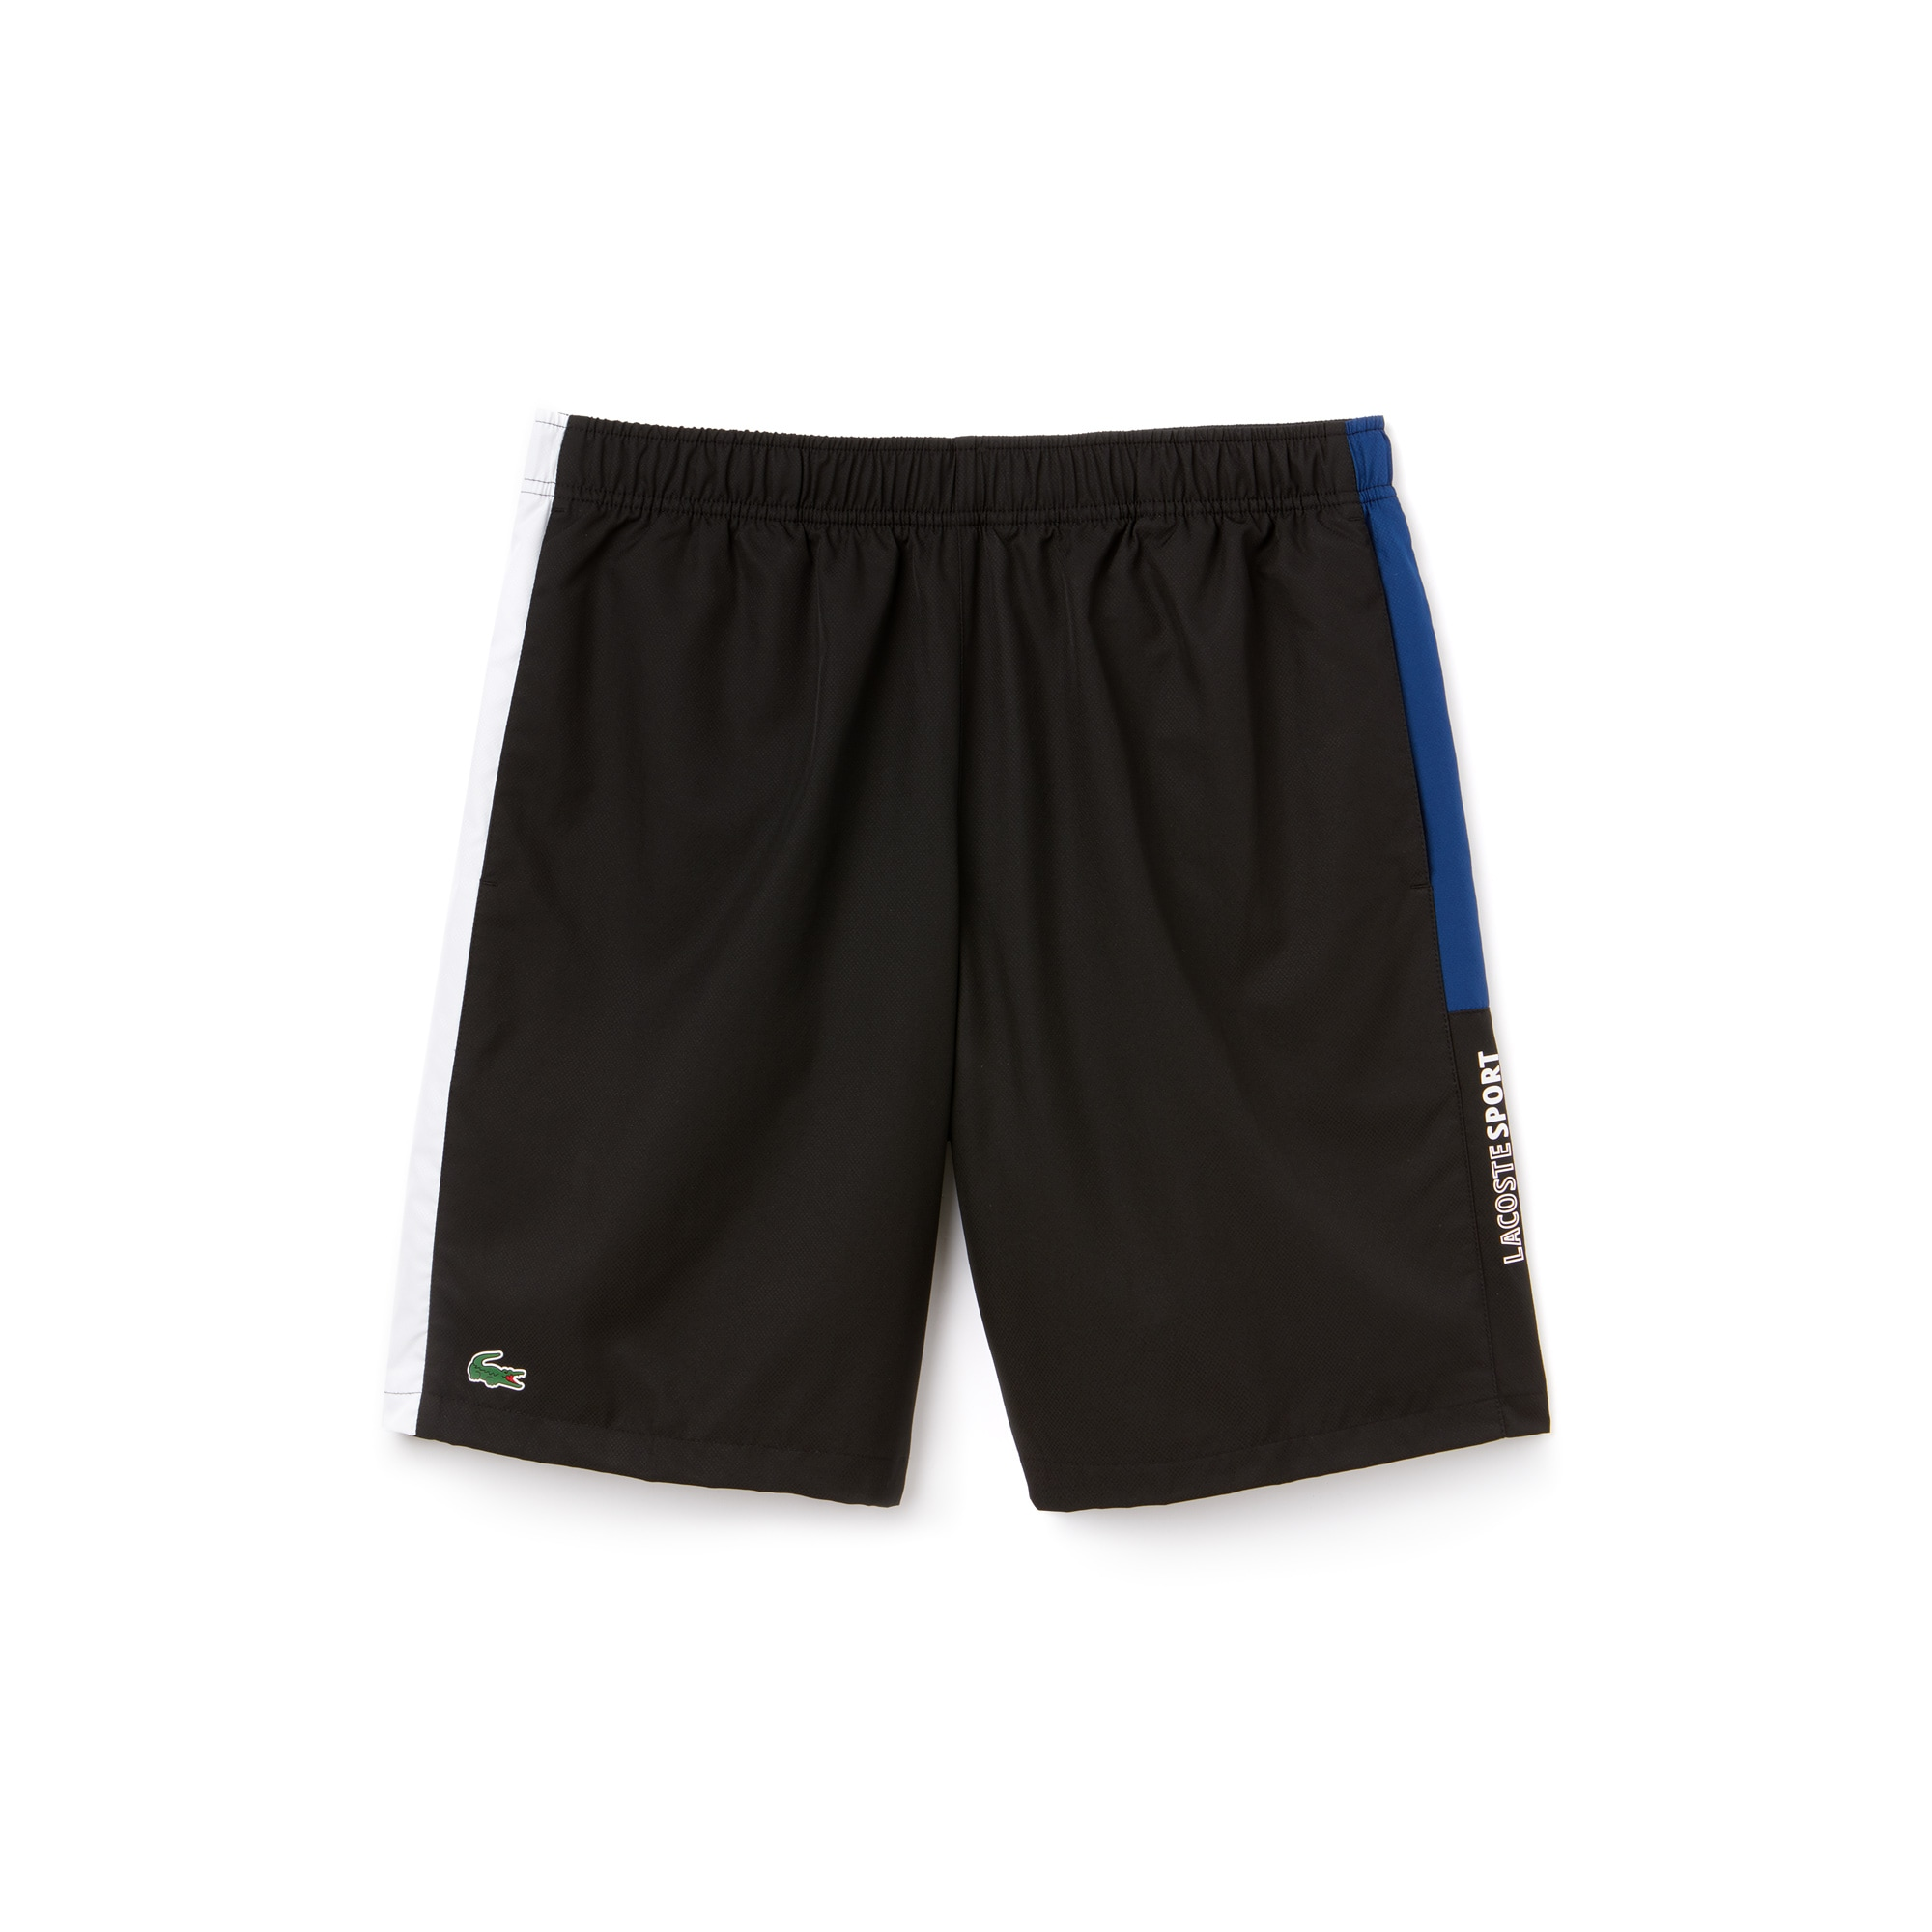 Men's Lacoste SPORT Colored Bands Taffeta Tennis Shorts